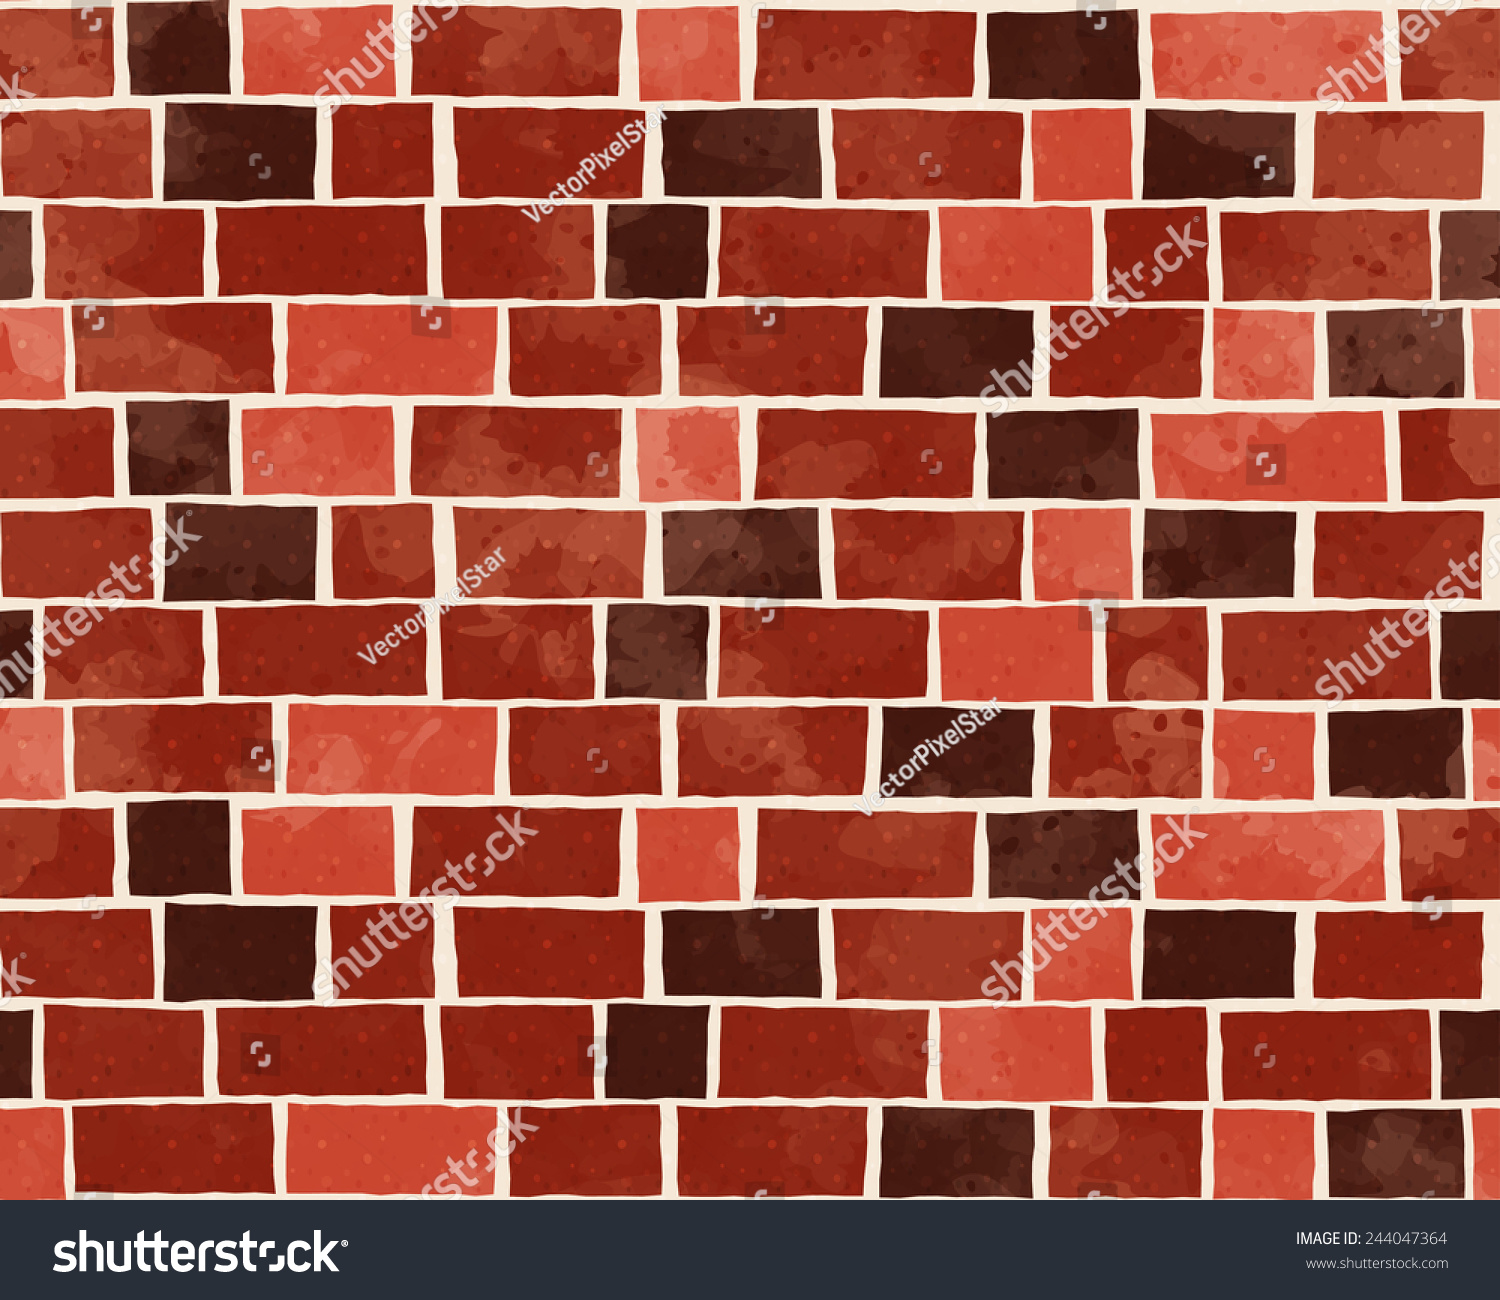 Red Brick Wall Textured Pattern Background Stock Vector